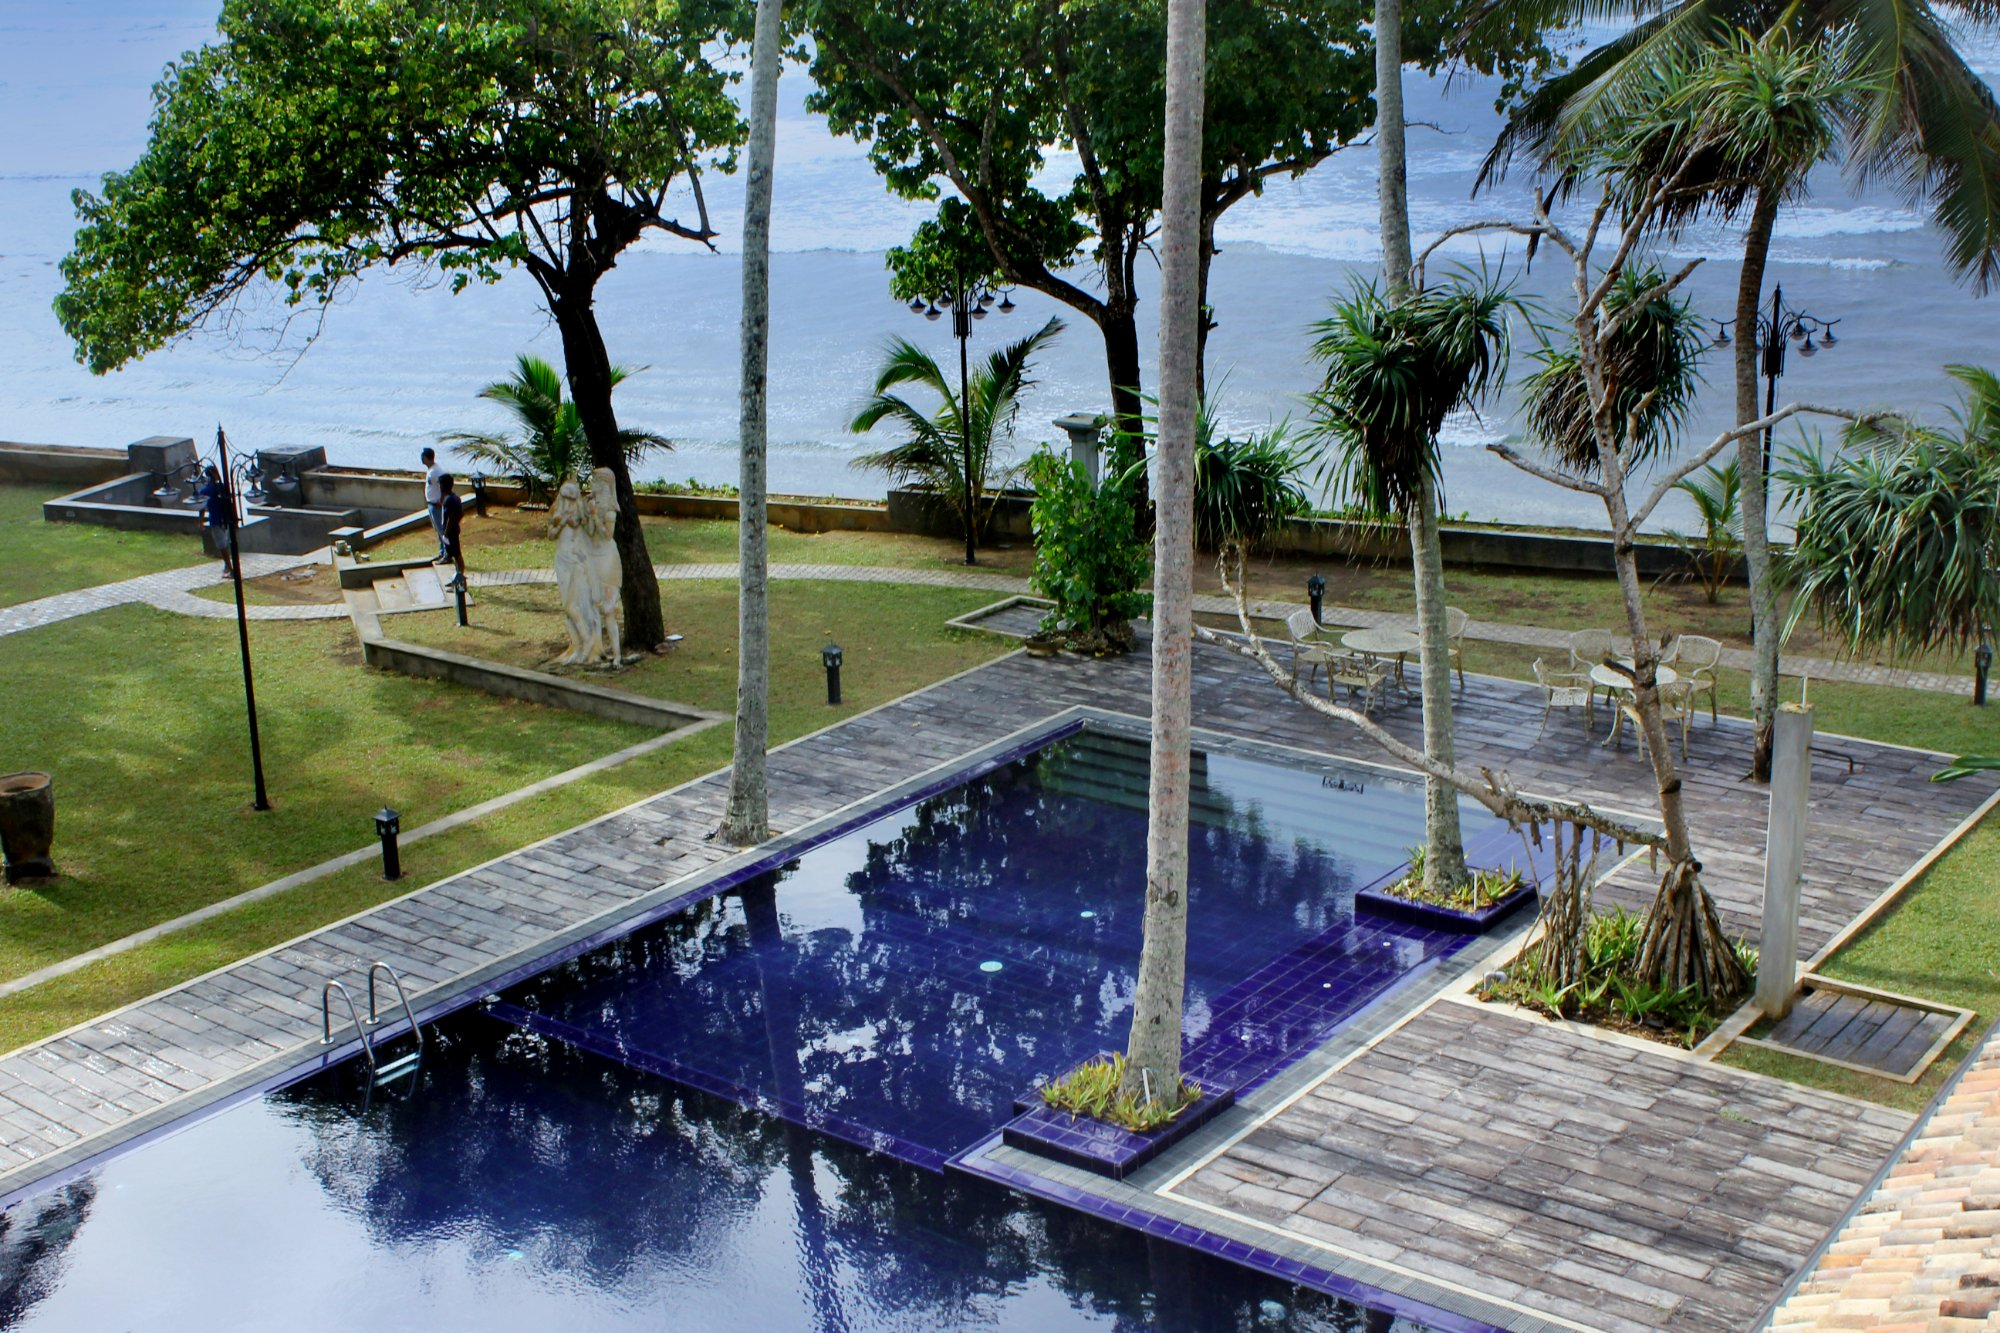 Kabalana Boutique Hotel & Spa